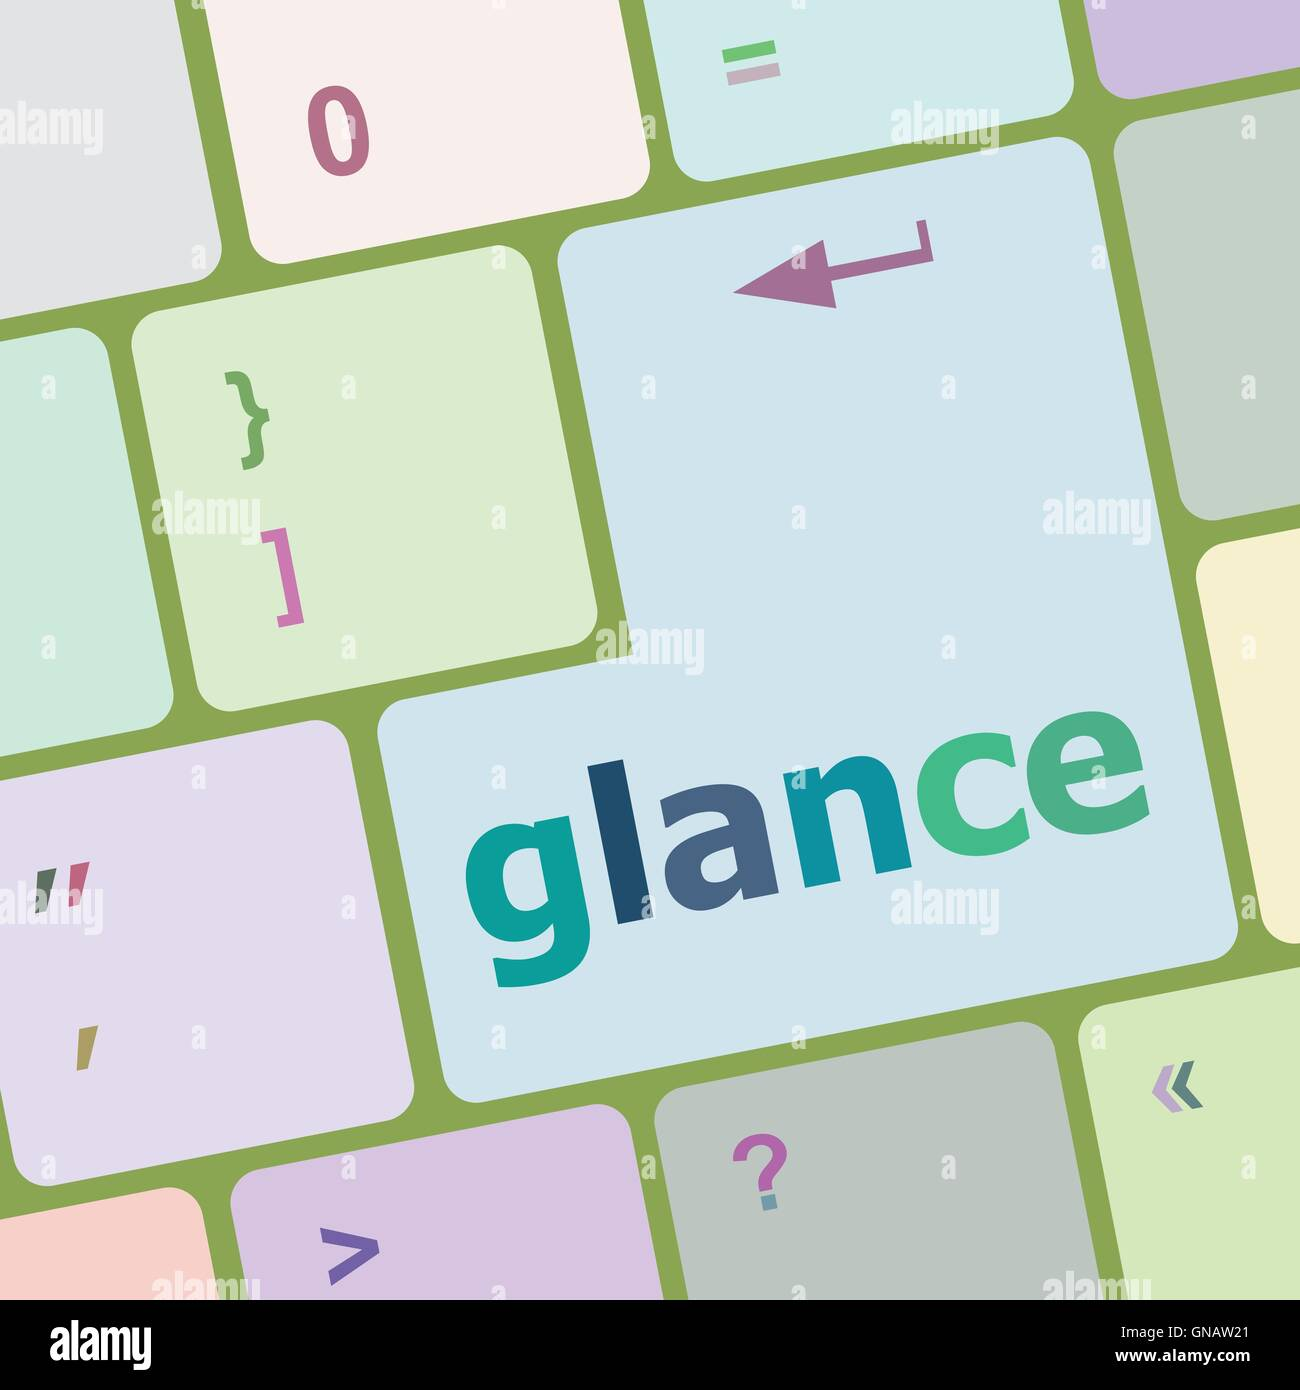 glance word on keyboard key, notebook computer button vector illustration - Stock Image